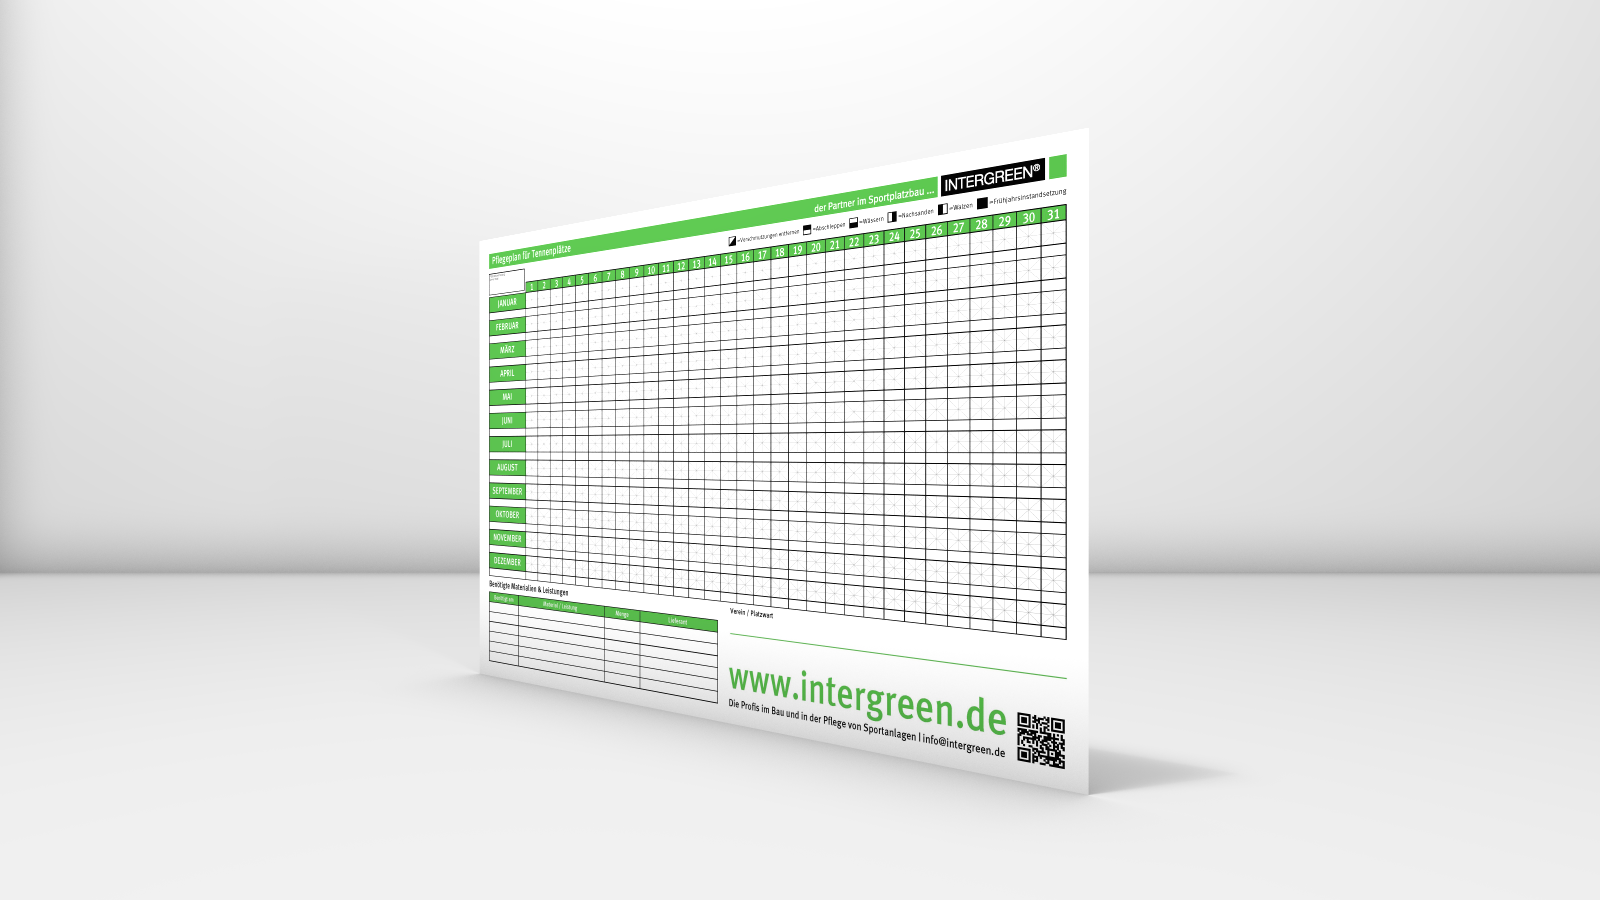 INTERGREEN BASIS WEB 20160129 001 Poster Pflegeplan Tenne